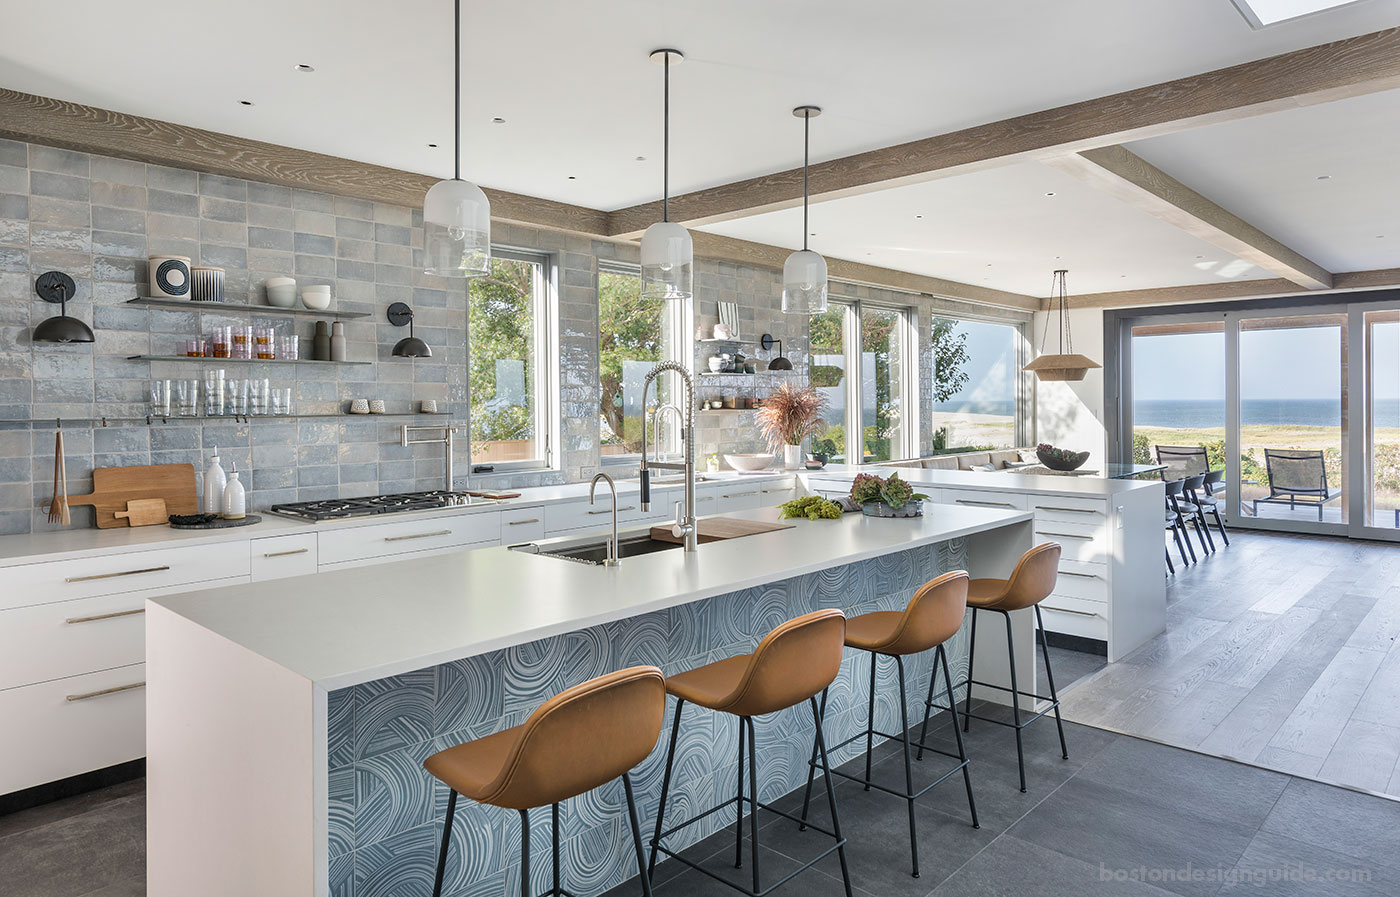 Modern kitchen for a beachfront property with cabinetry by Kochman Reidt + Haigh Cabinetmakers, construction by S.J. Overstreet